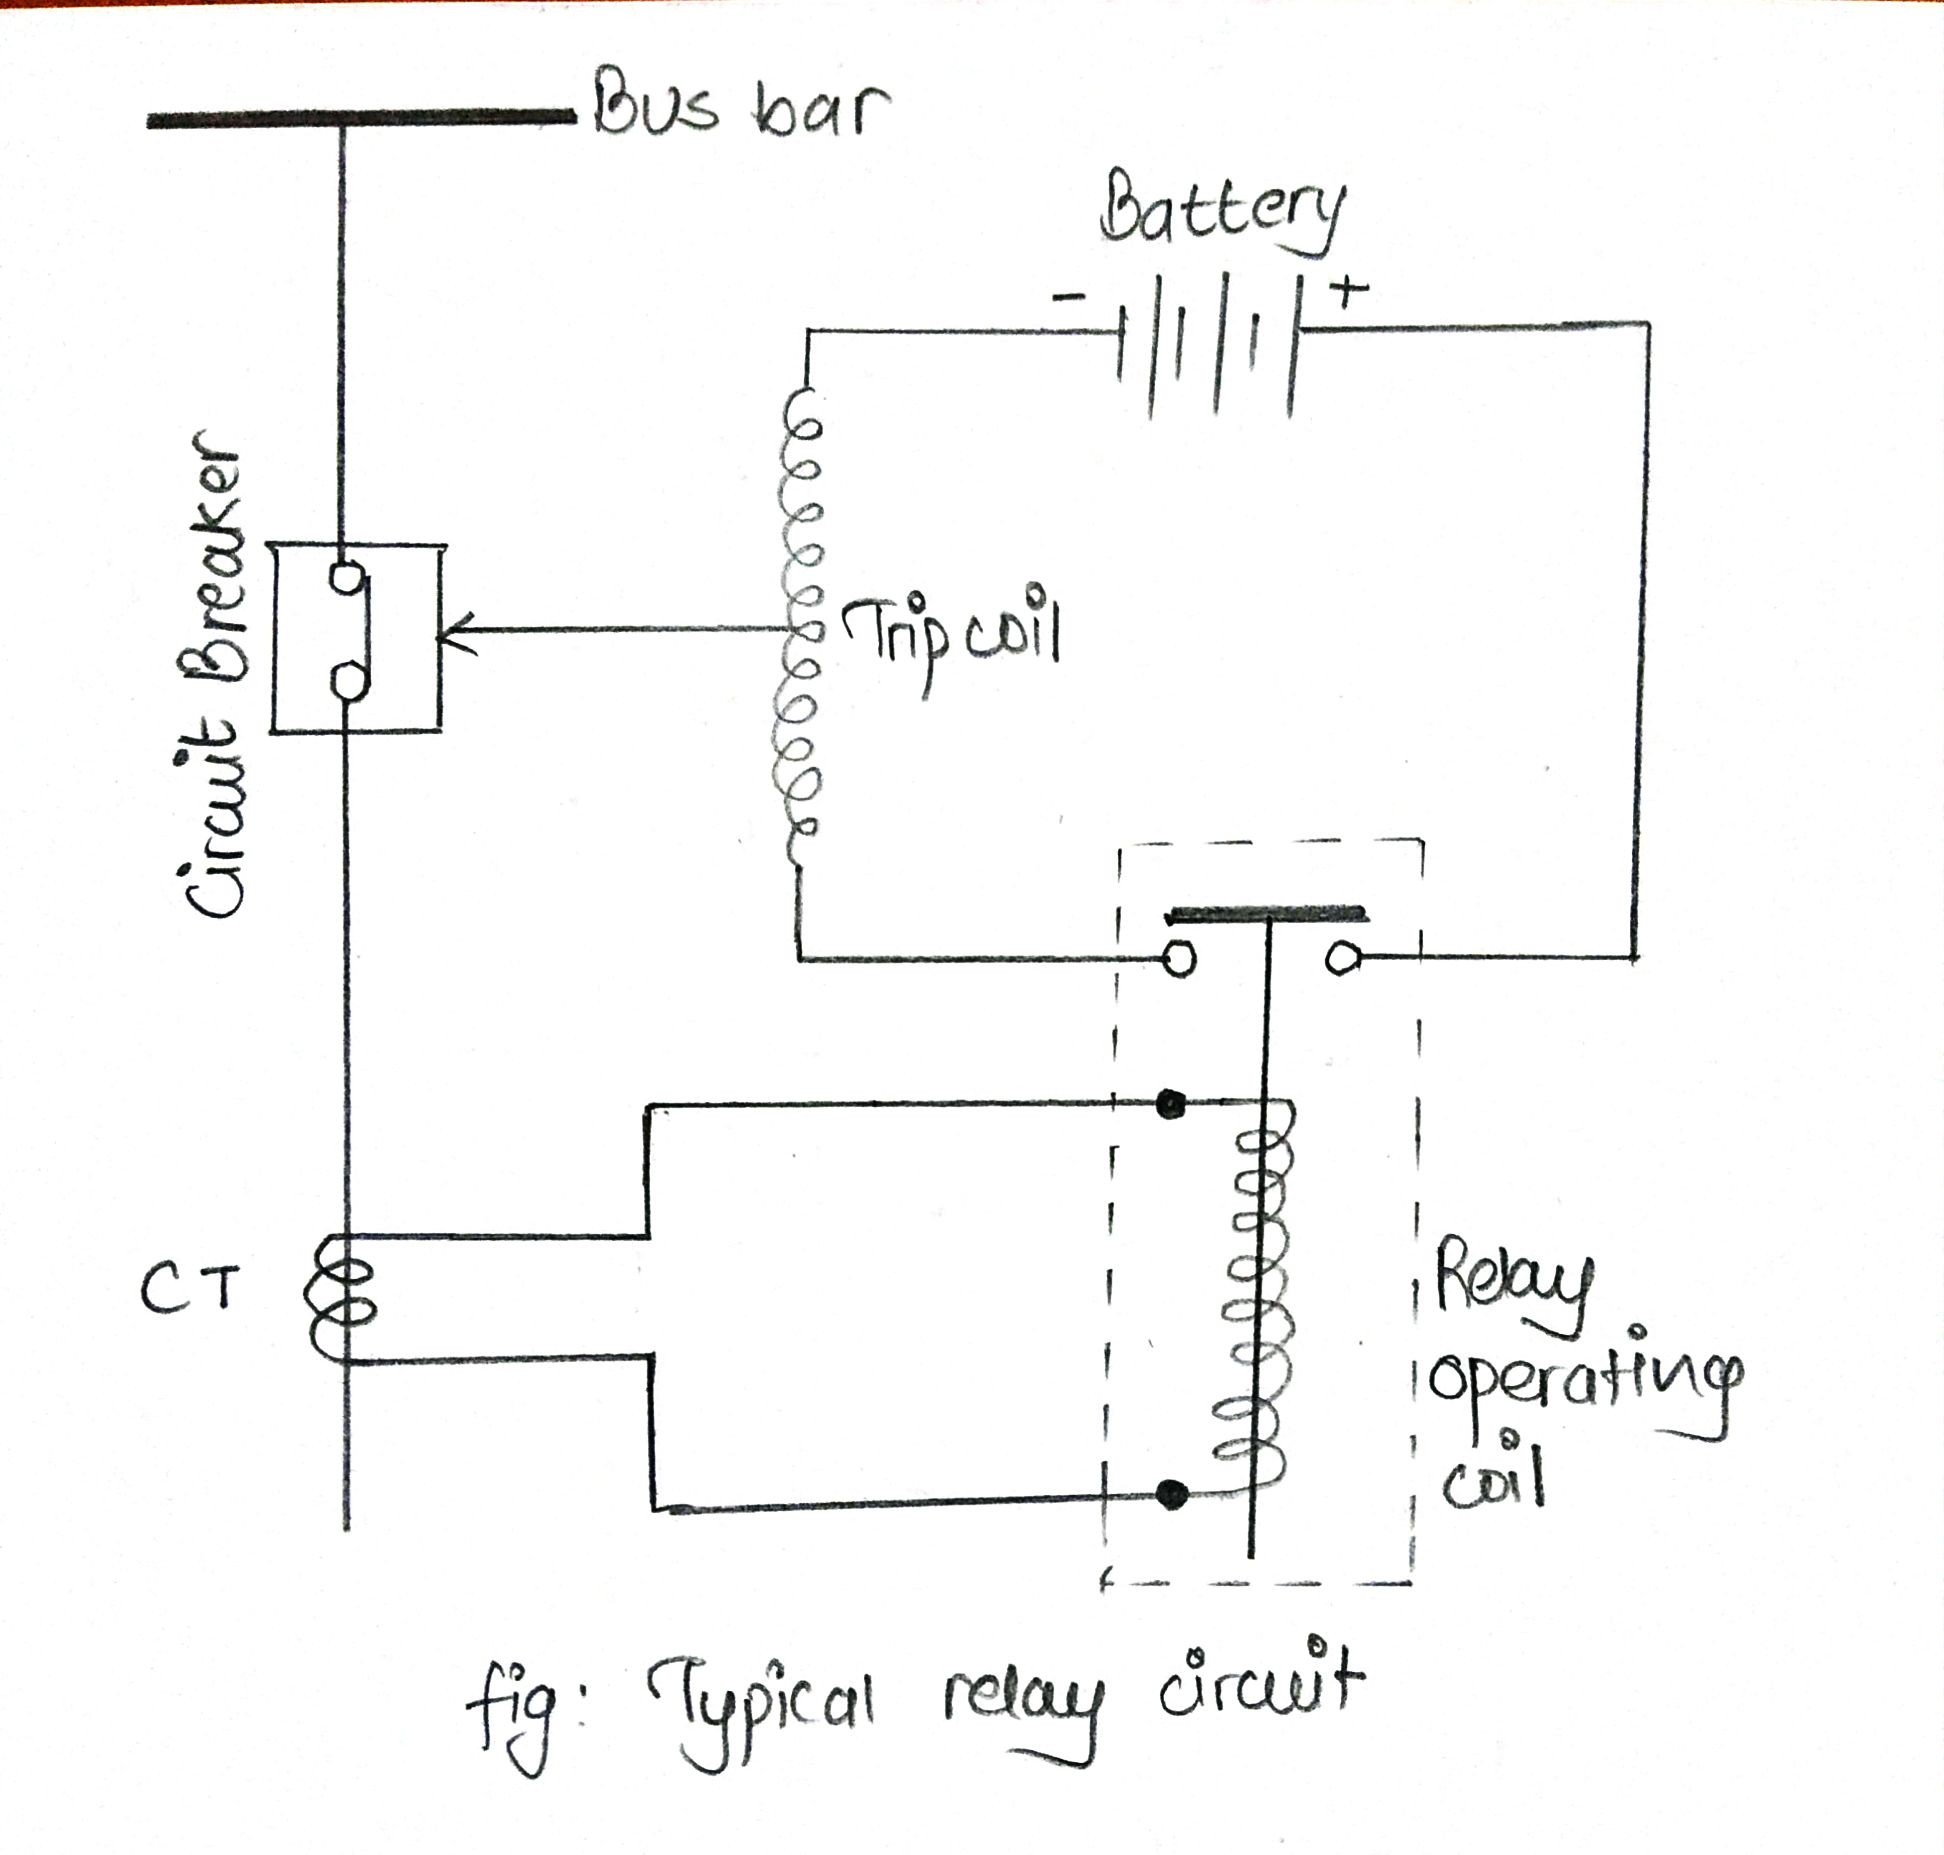 Fault clearing process for fault in electric power system